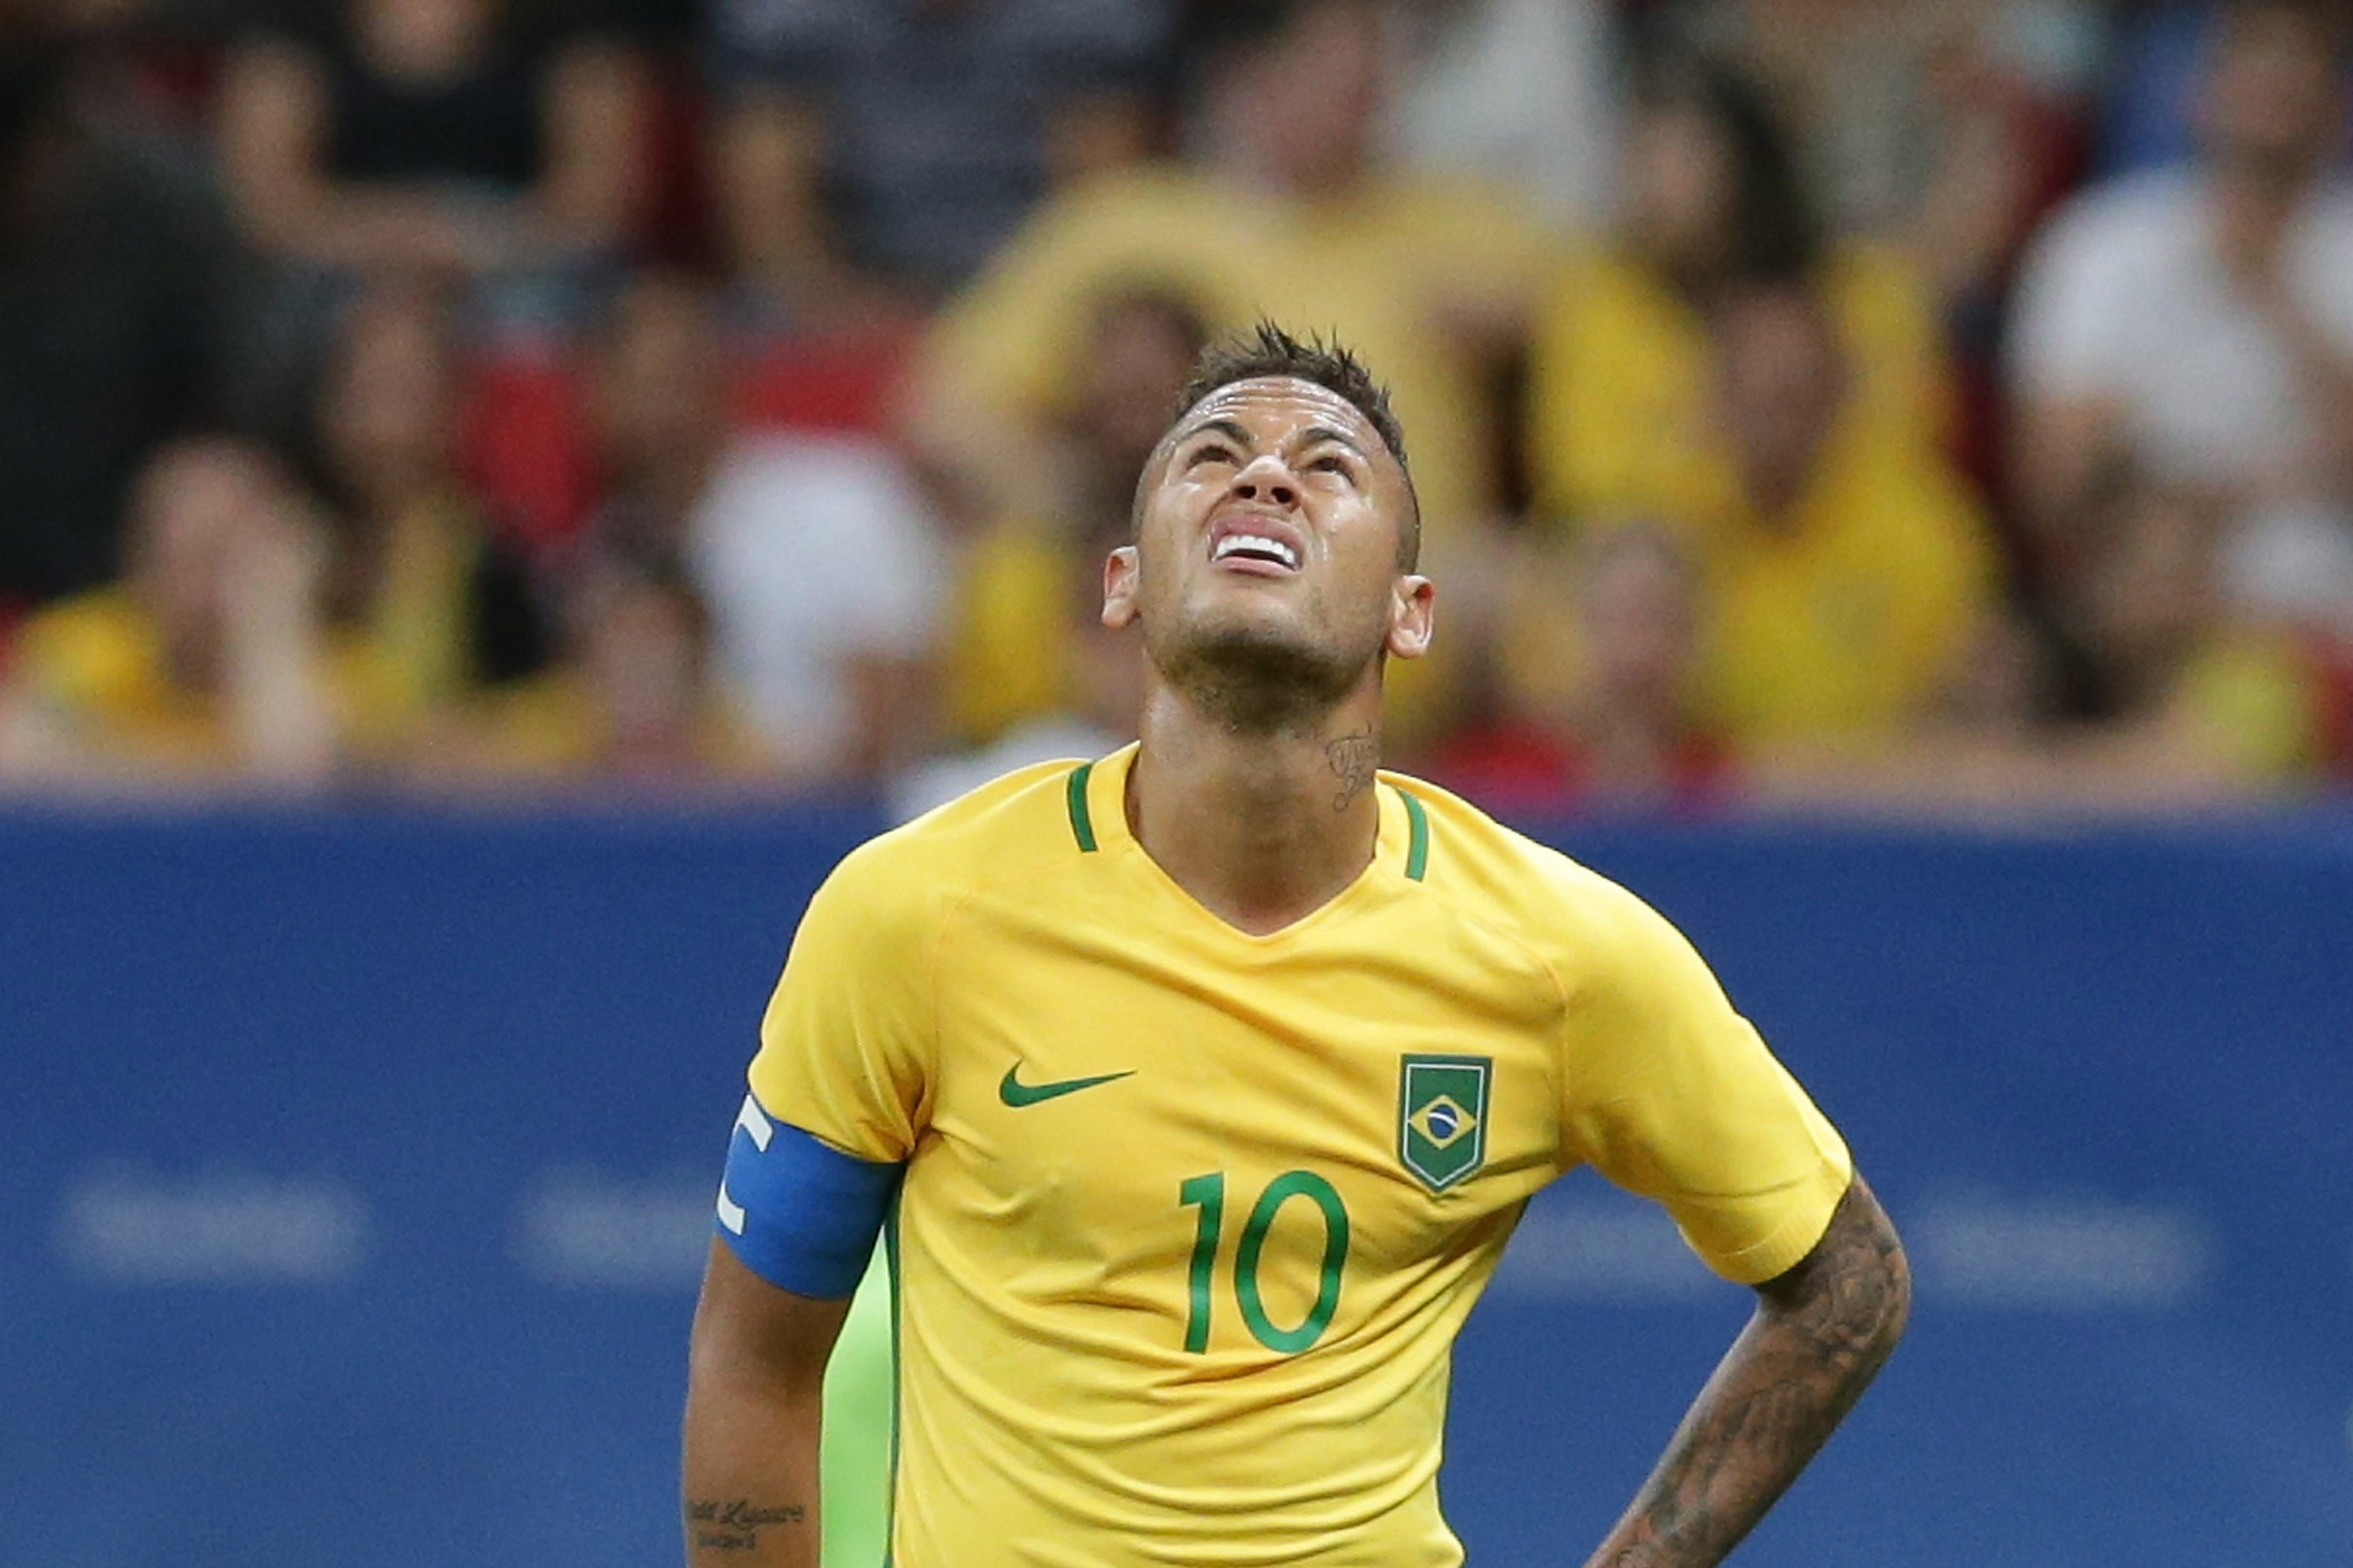 Brazil's Neymar grimaces at the end of a group A match of the men's Olympic football tournament between Brazil and Iraq at the National Stadium in Brasilia, Brazil, Sunday, Aug. 7, 2016. The game ended in a 0-0 draw. (AP Photo/Eraldo Peres)